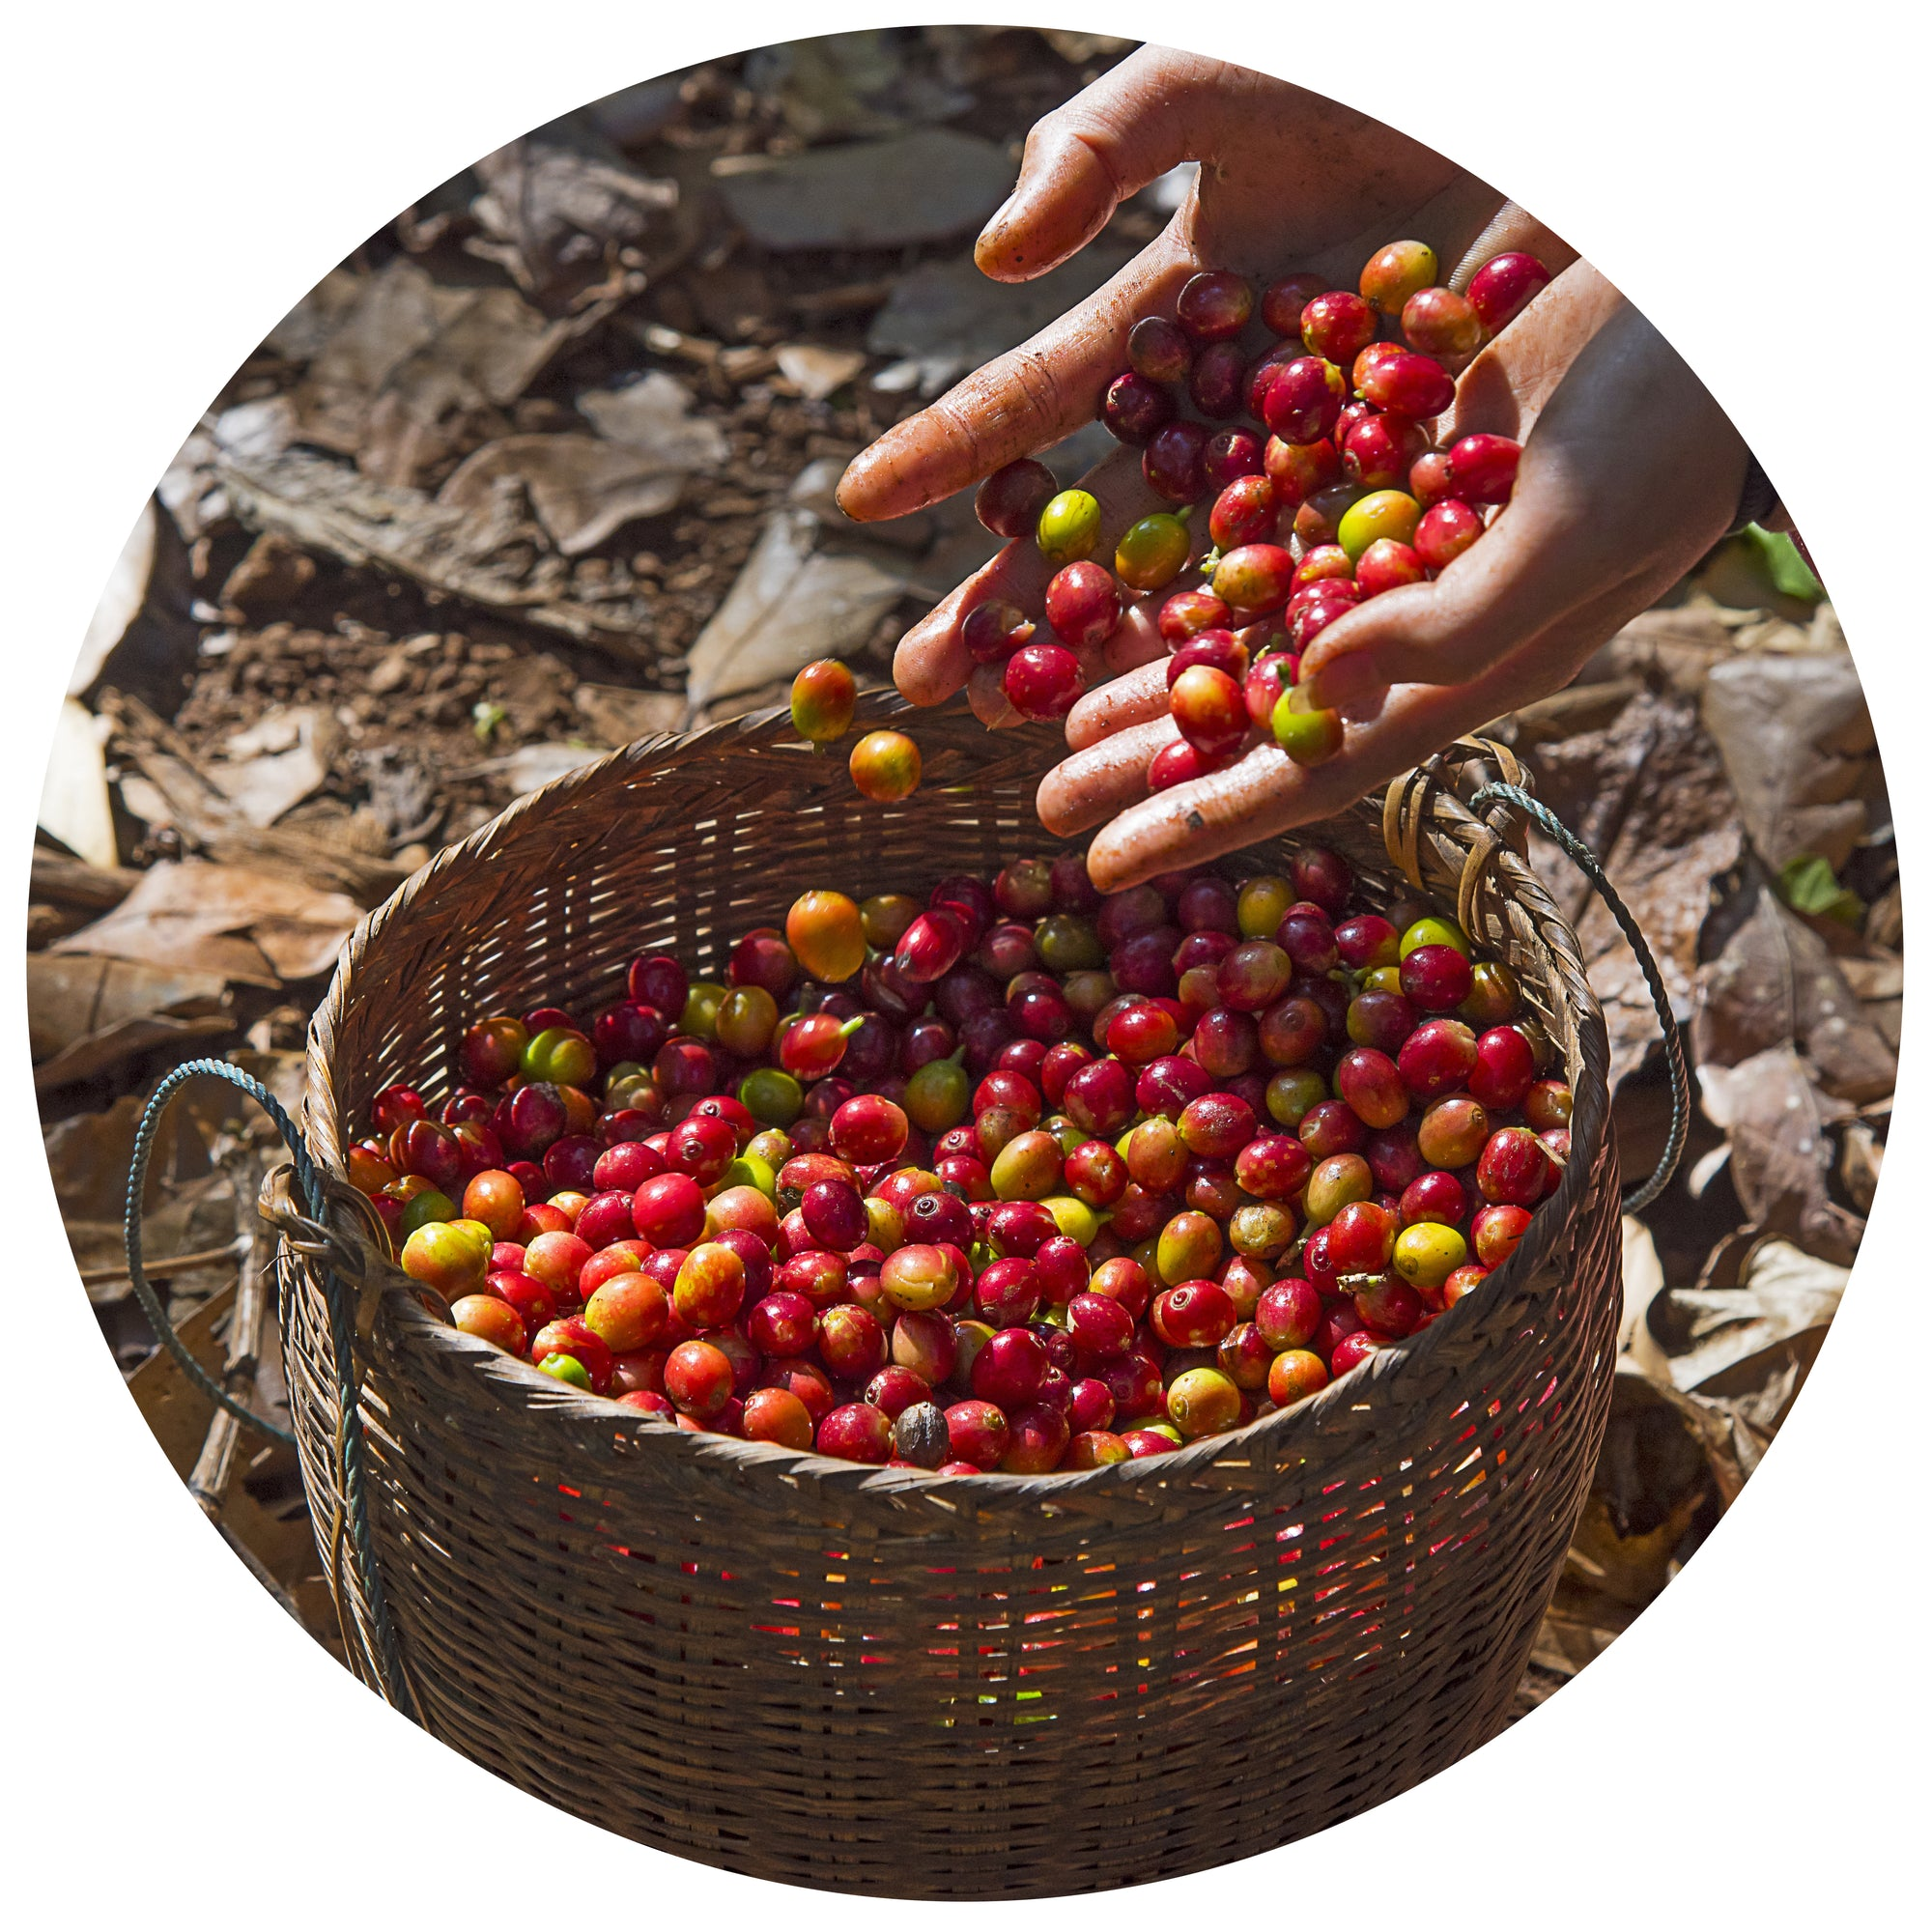 ripened coffee cherries being poured into a basket